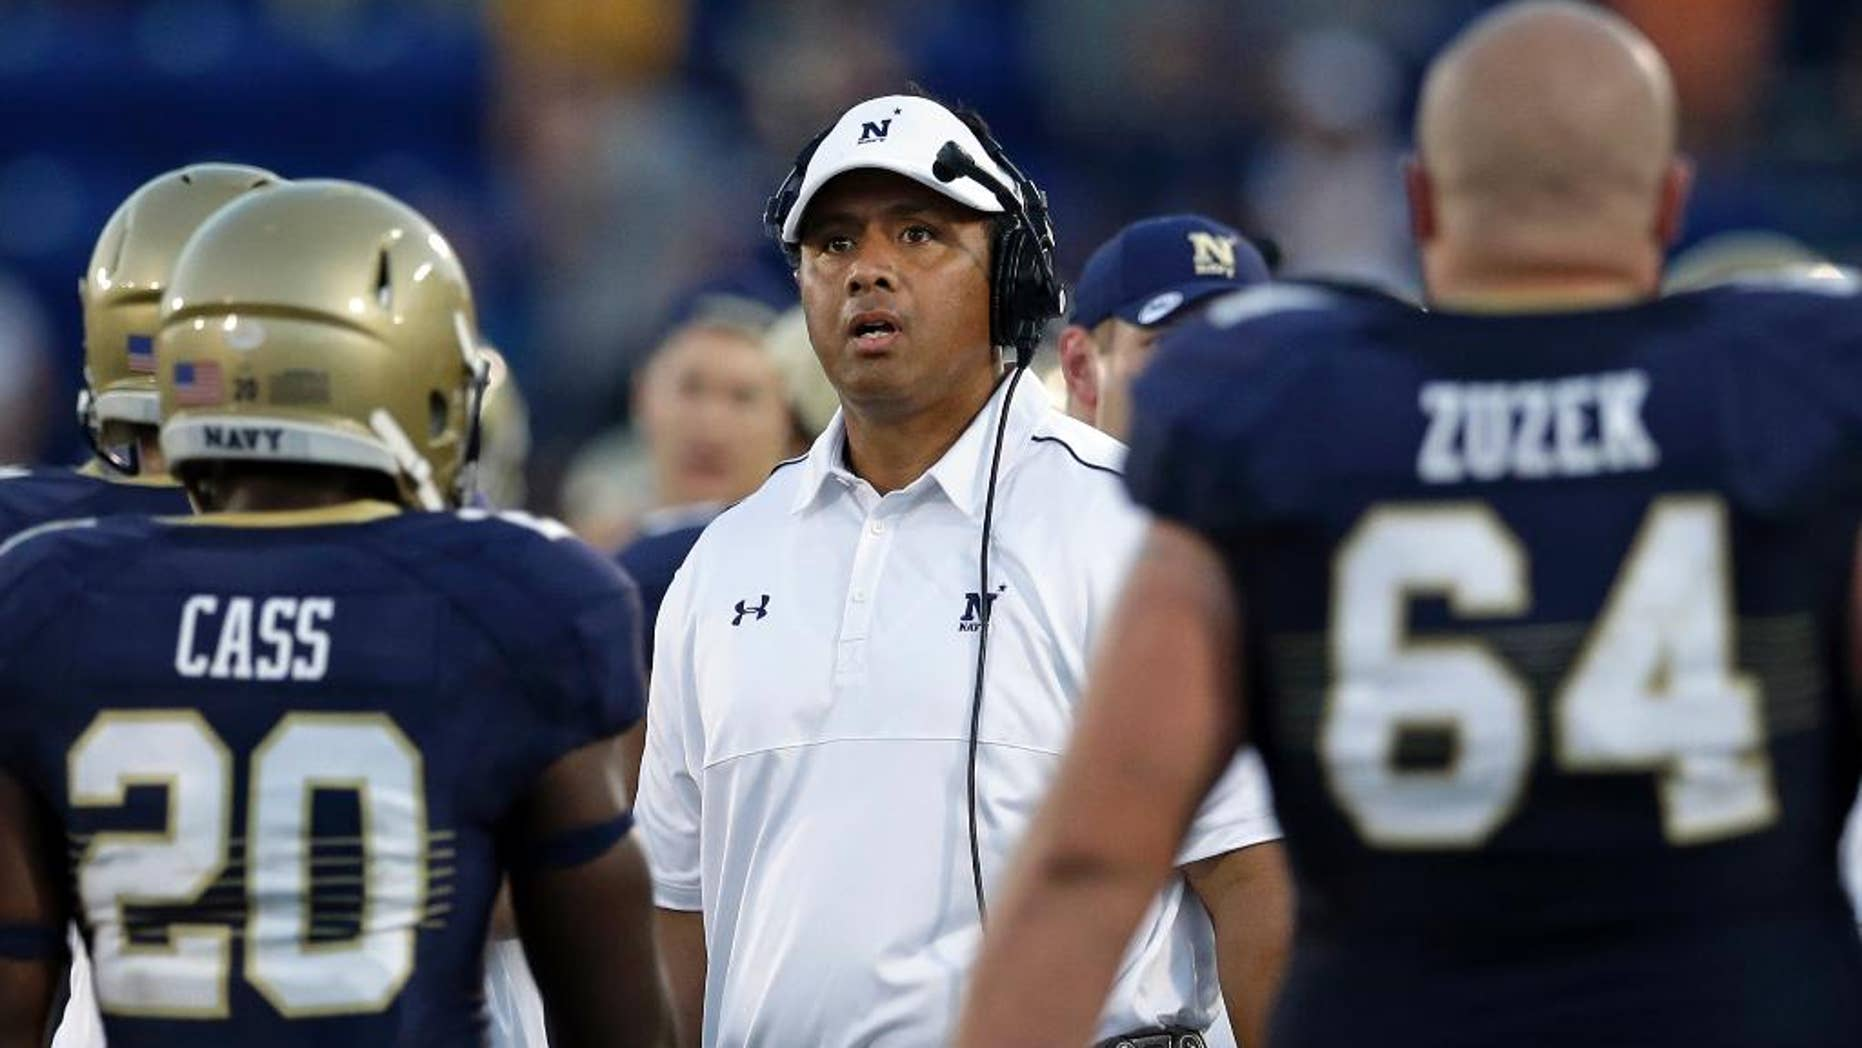 Navy head coach Ken Niumatalolo, center, looks on as players walk off the field after Navy's touchdown attempt on fourth down went out of bounds in the final moments of an NCAA college football game against Rutgers in Annapolis, Md., Saturday, Sept. 20, 2014. Rutgers won 31-24. (AP Photo/Patrick Semansky)